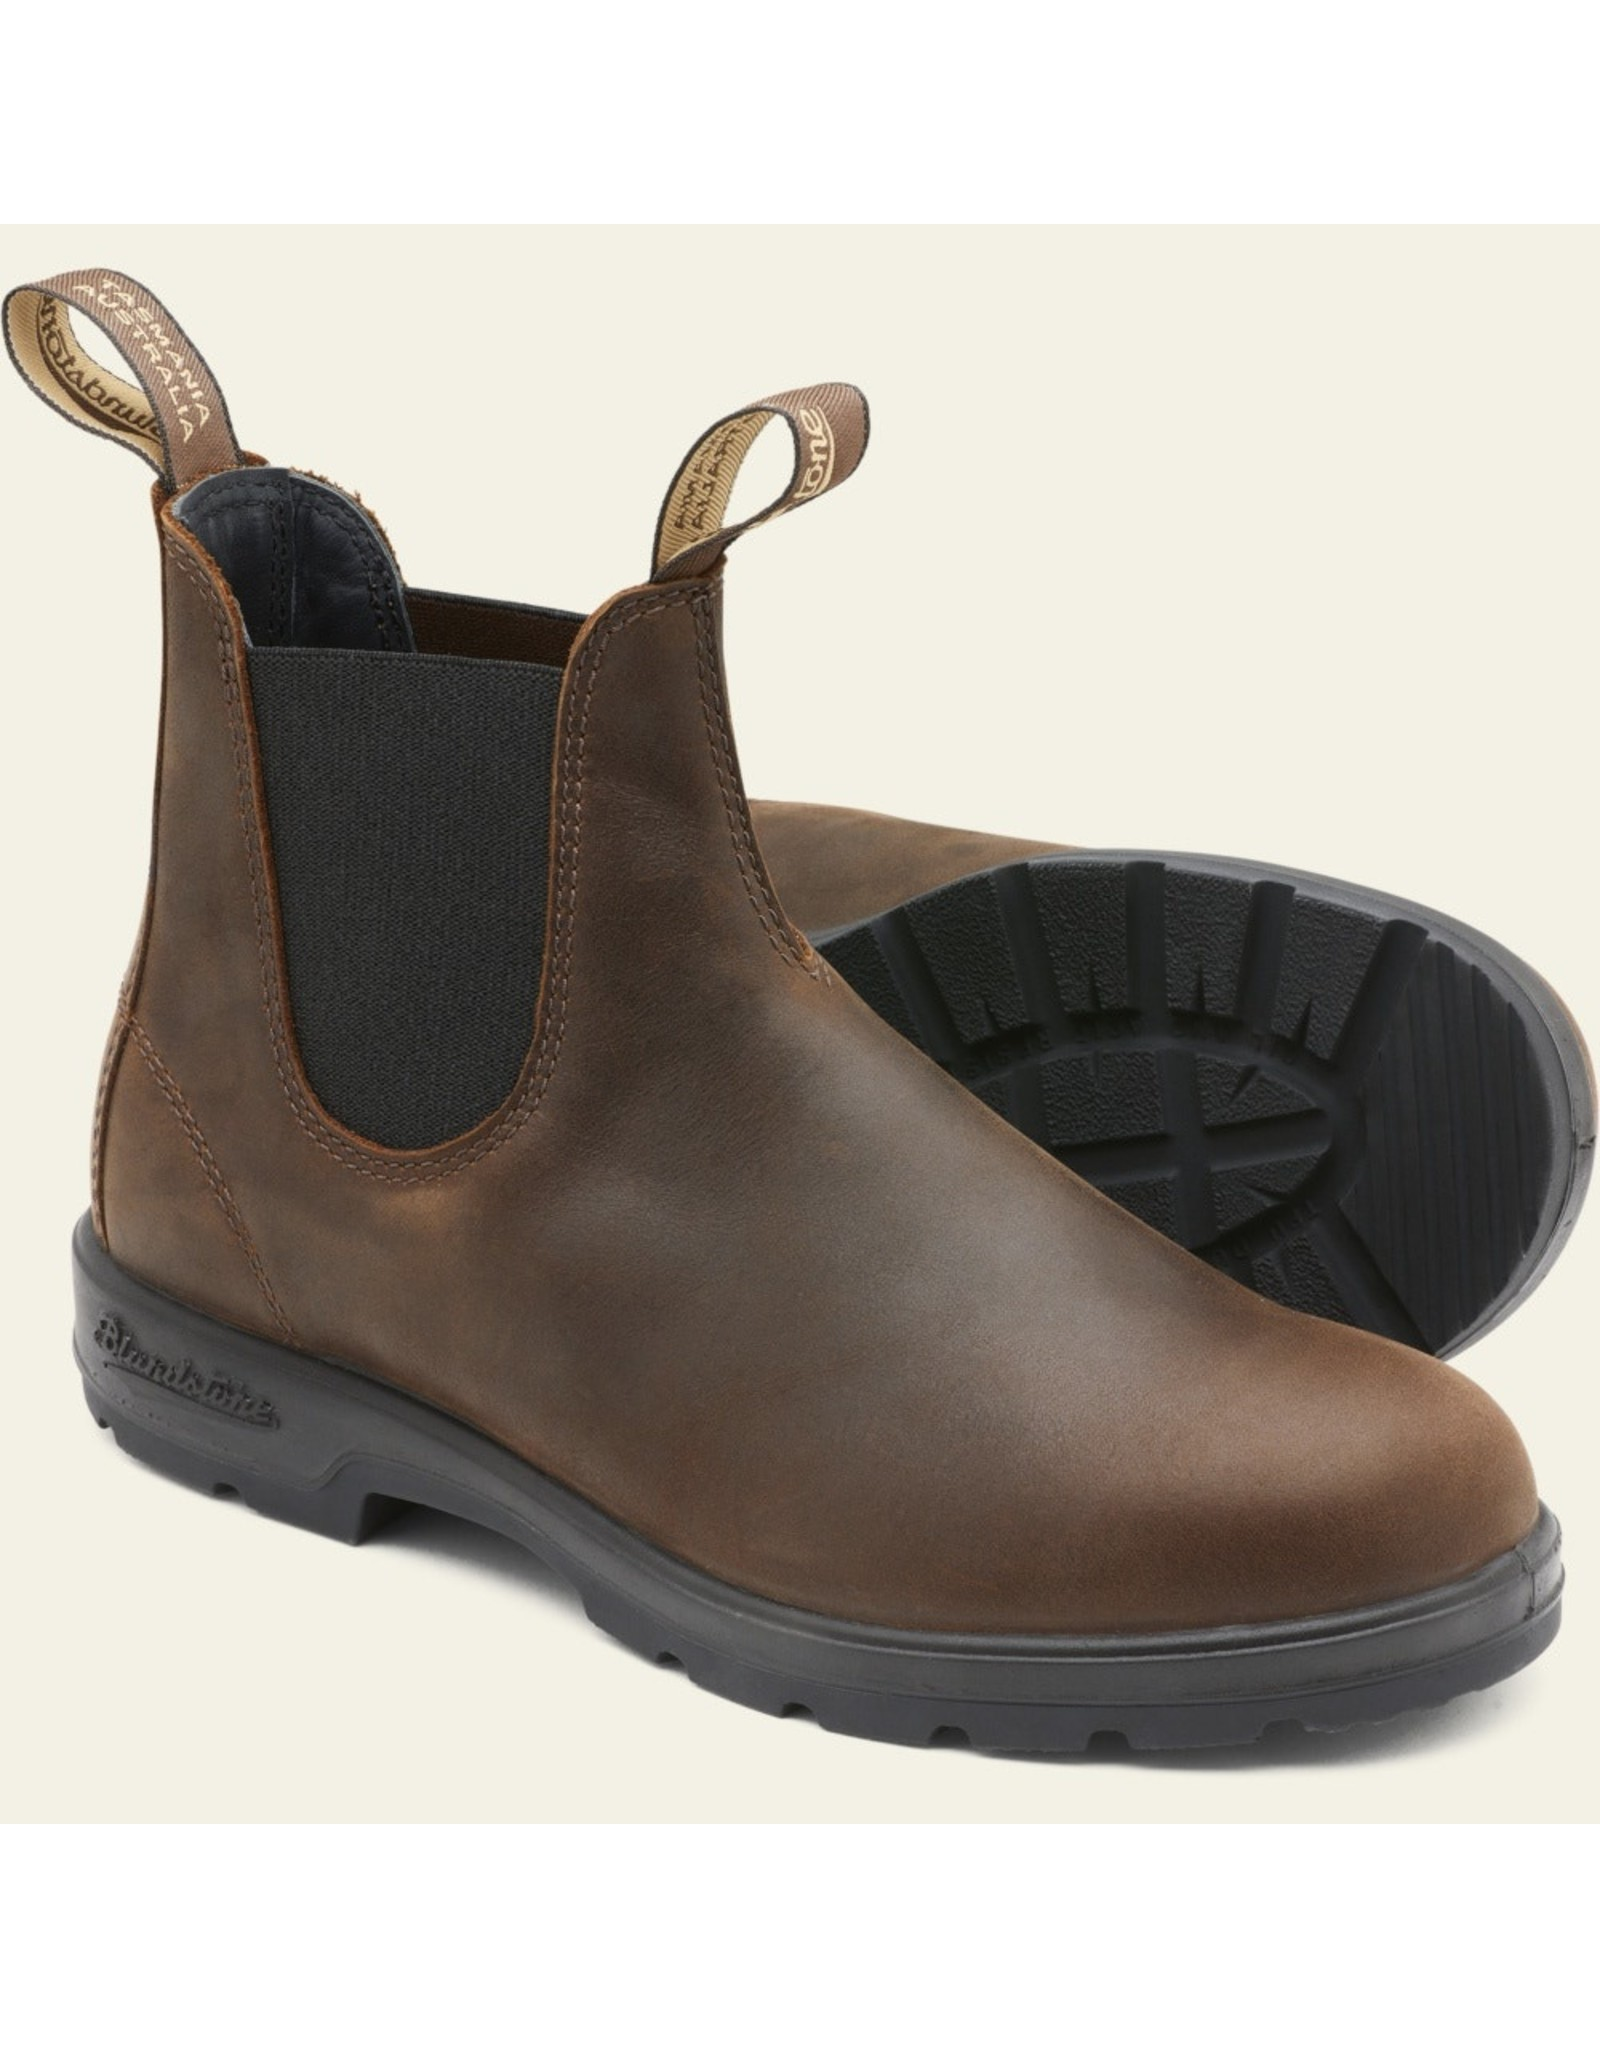 BLUNDSTONE CLASSIC CHELSEA BOOT-ANTIQUE BROWN